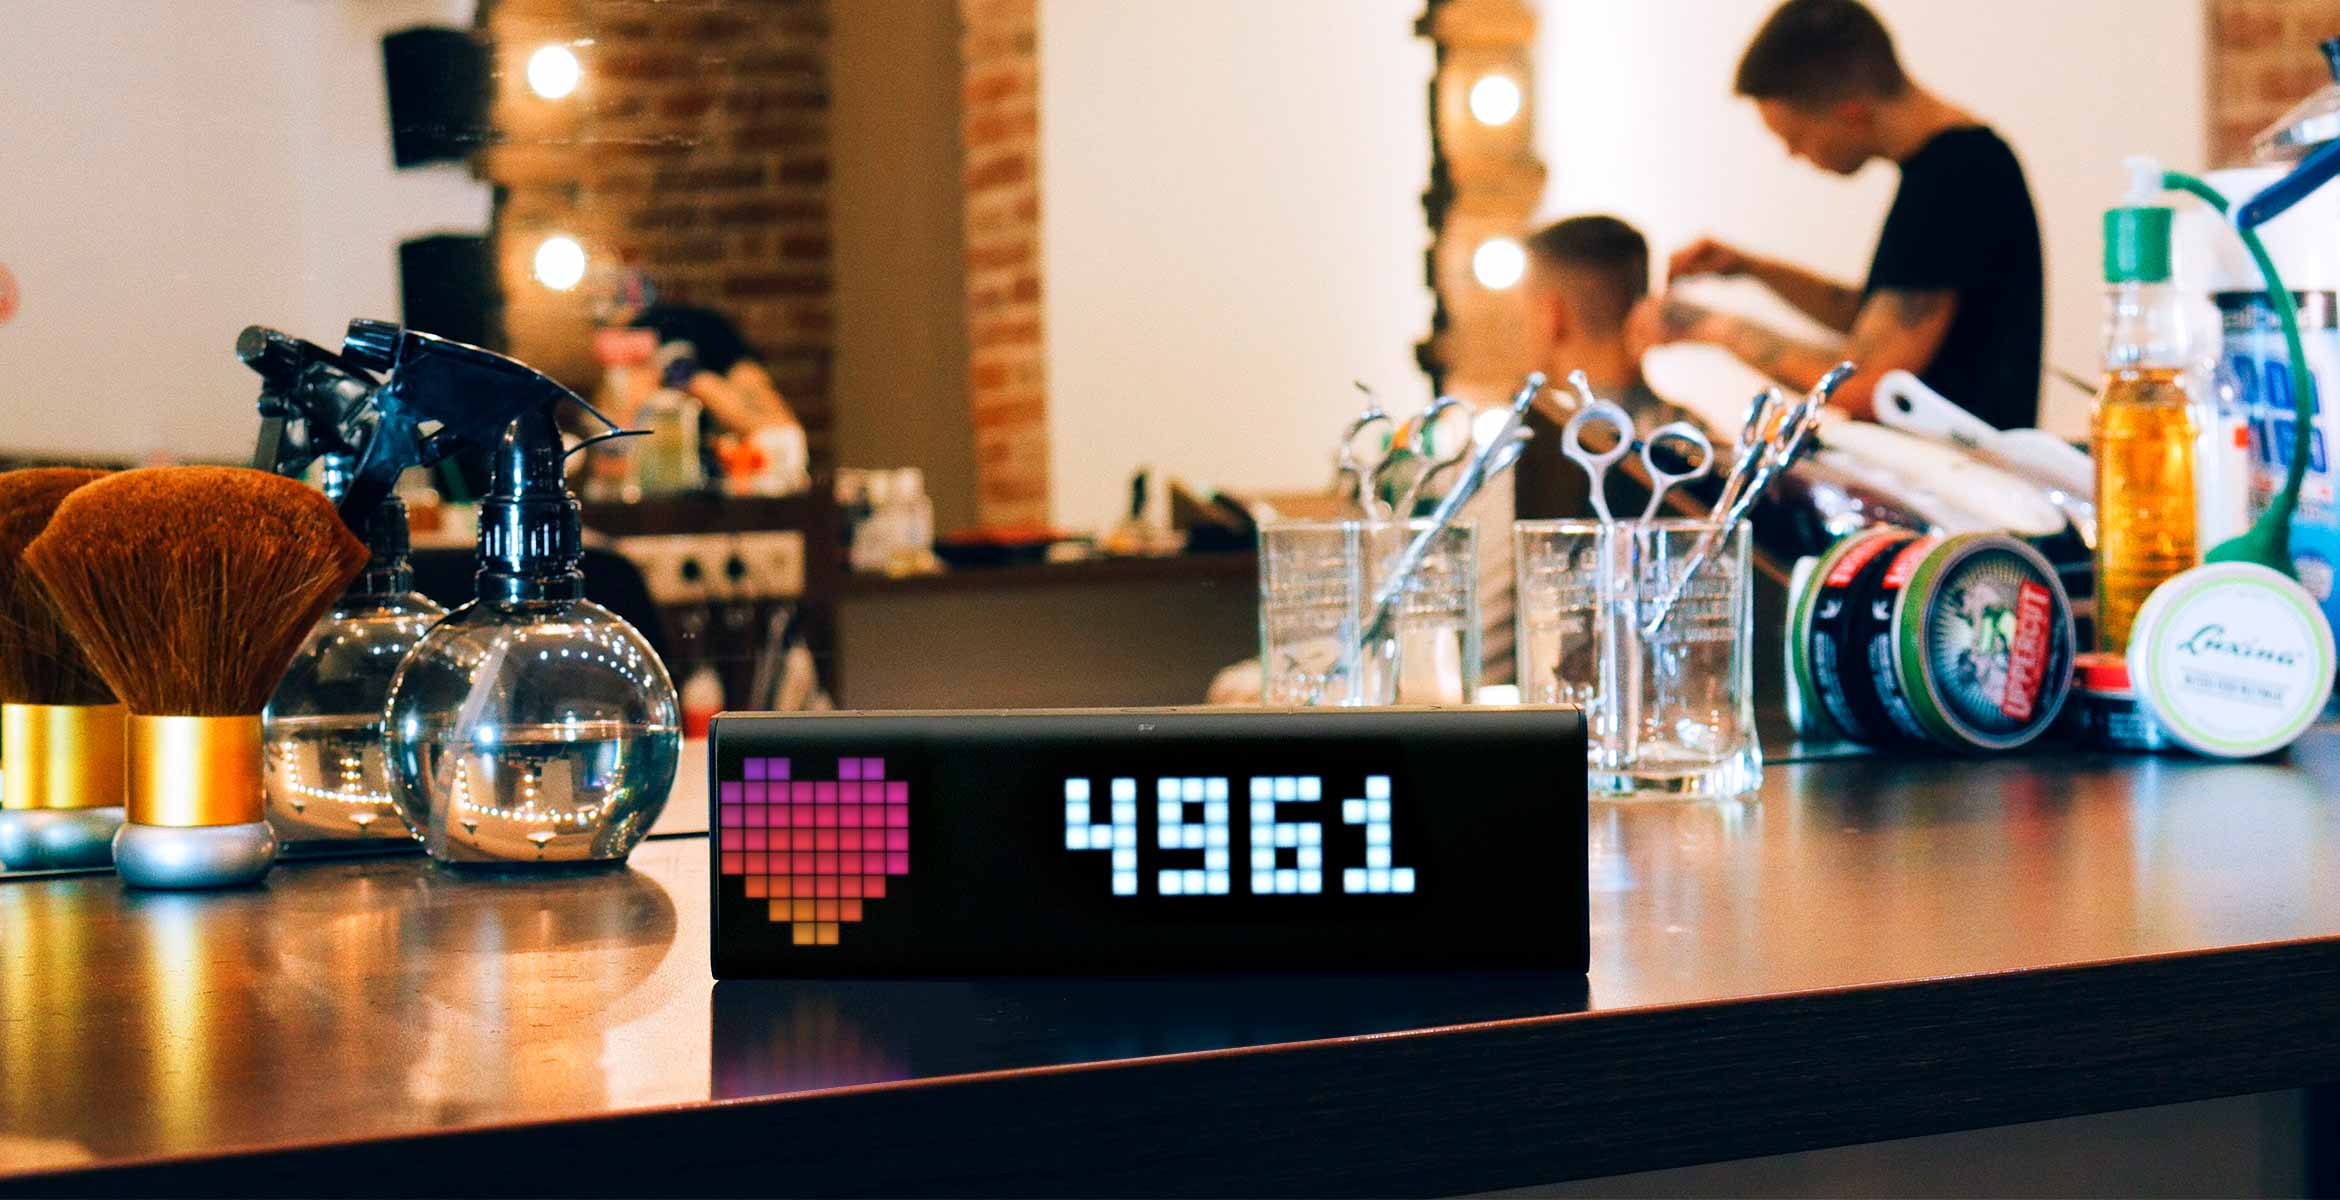 LaMetric Time smart clock, placed at the barbershop, displays follower count for your Instagram account